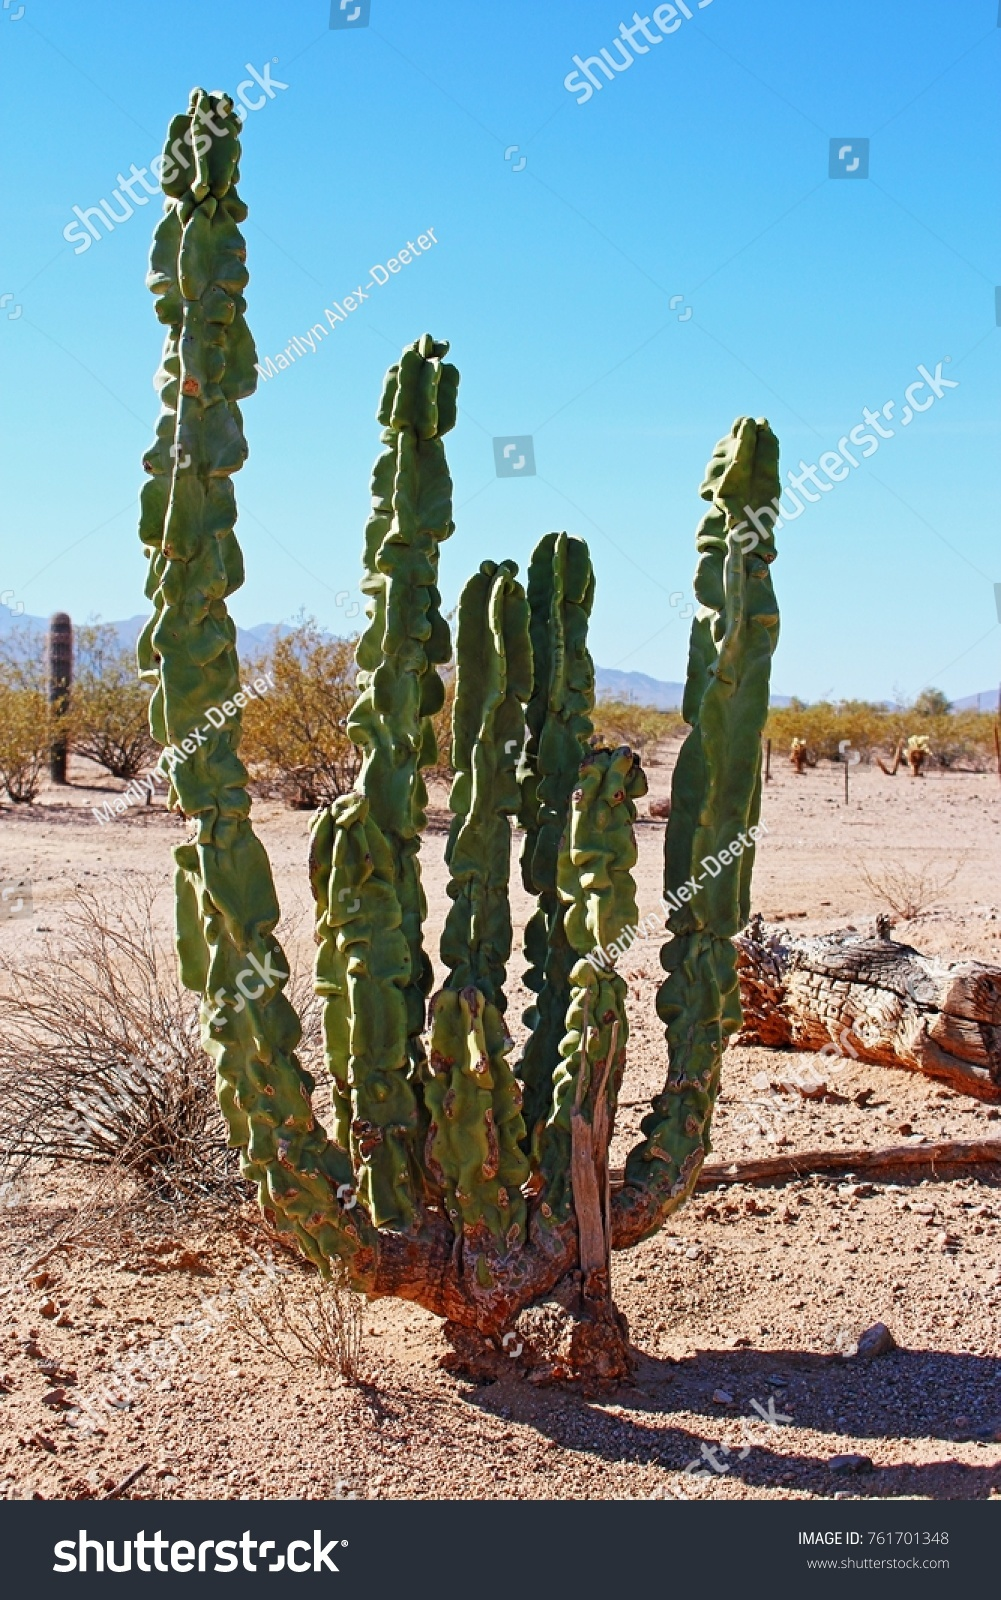 Totem pole cactus that is about 4 tall and 20 plus years old photographed